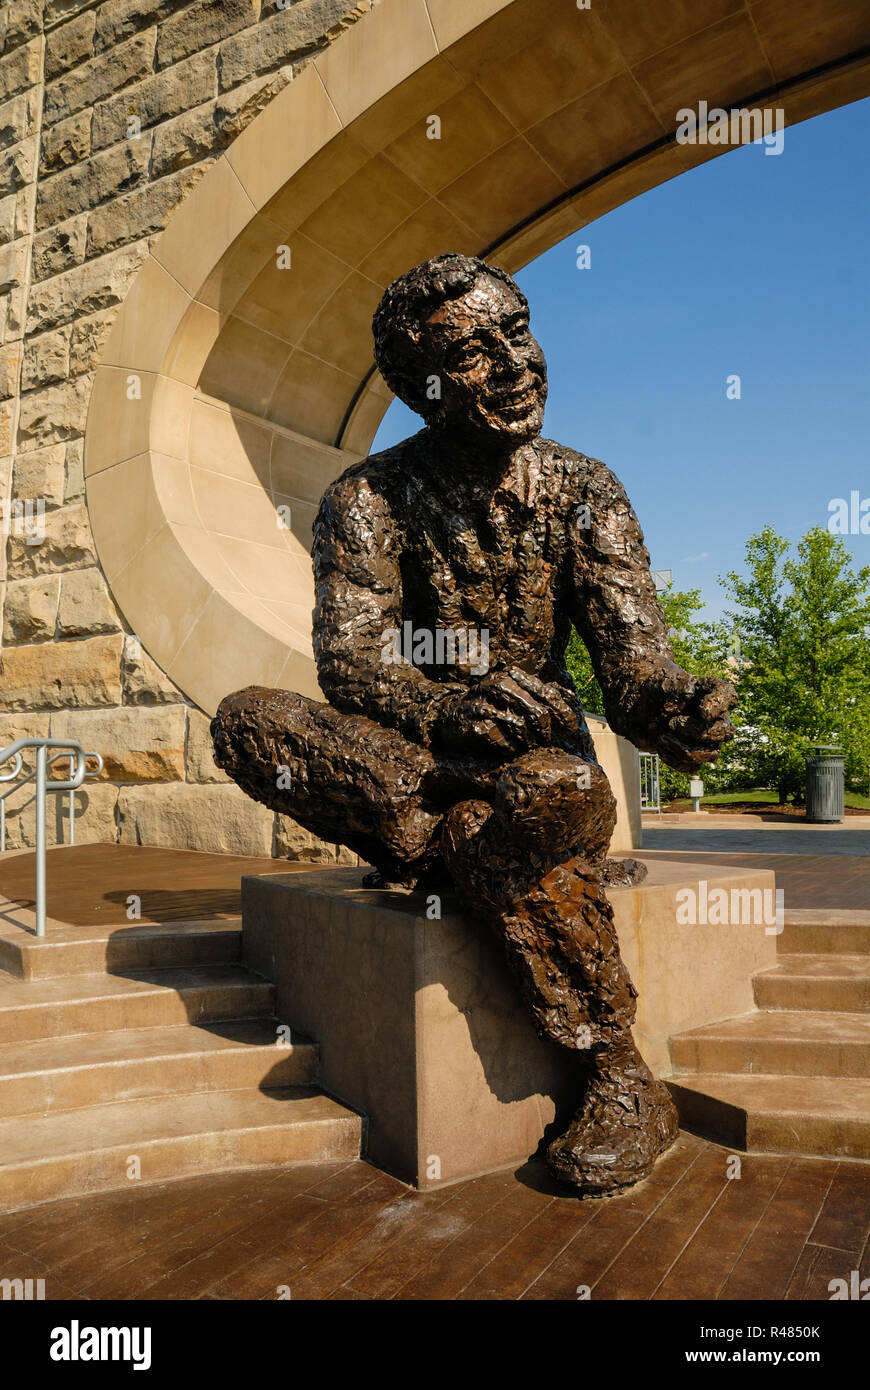 Fred Rogers Statue High Resolution Stock Photography And Images Alamy